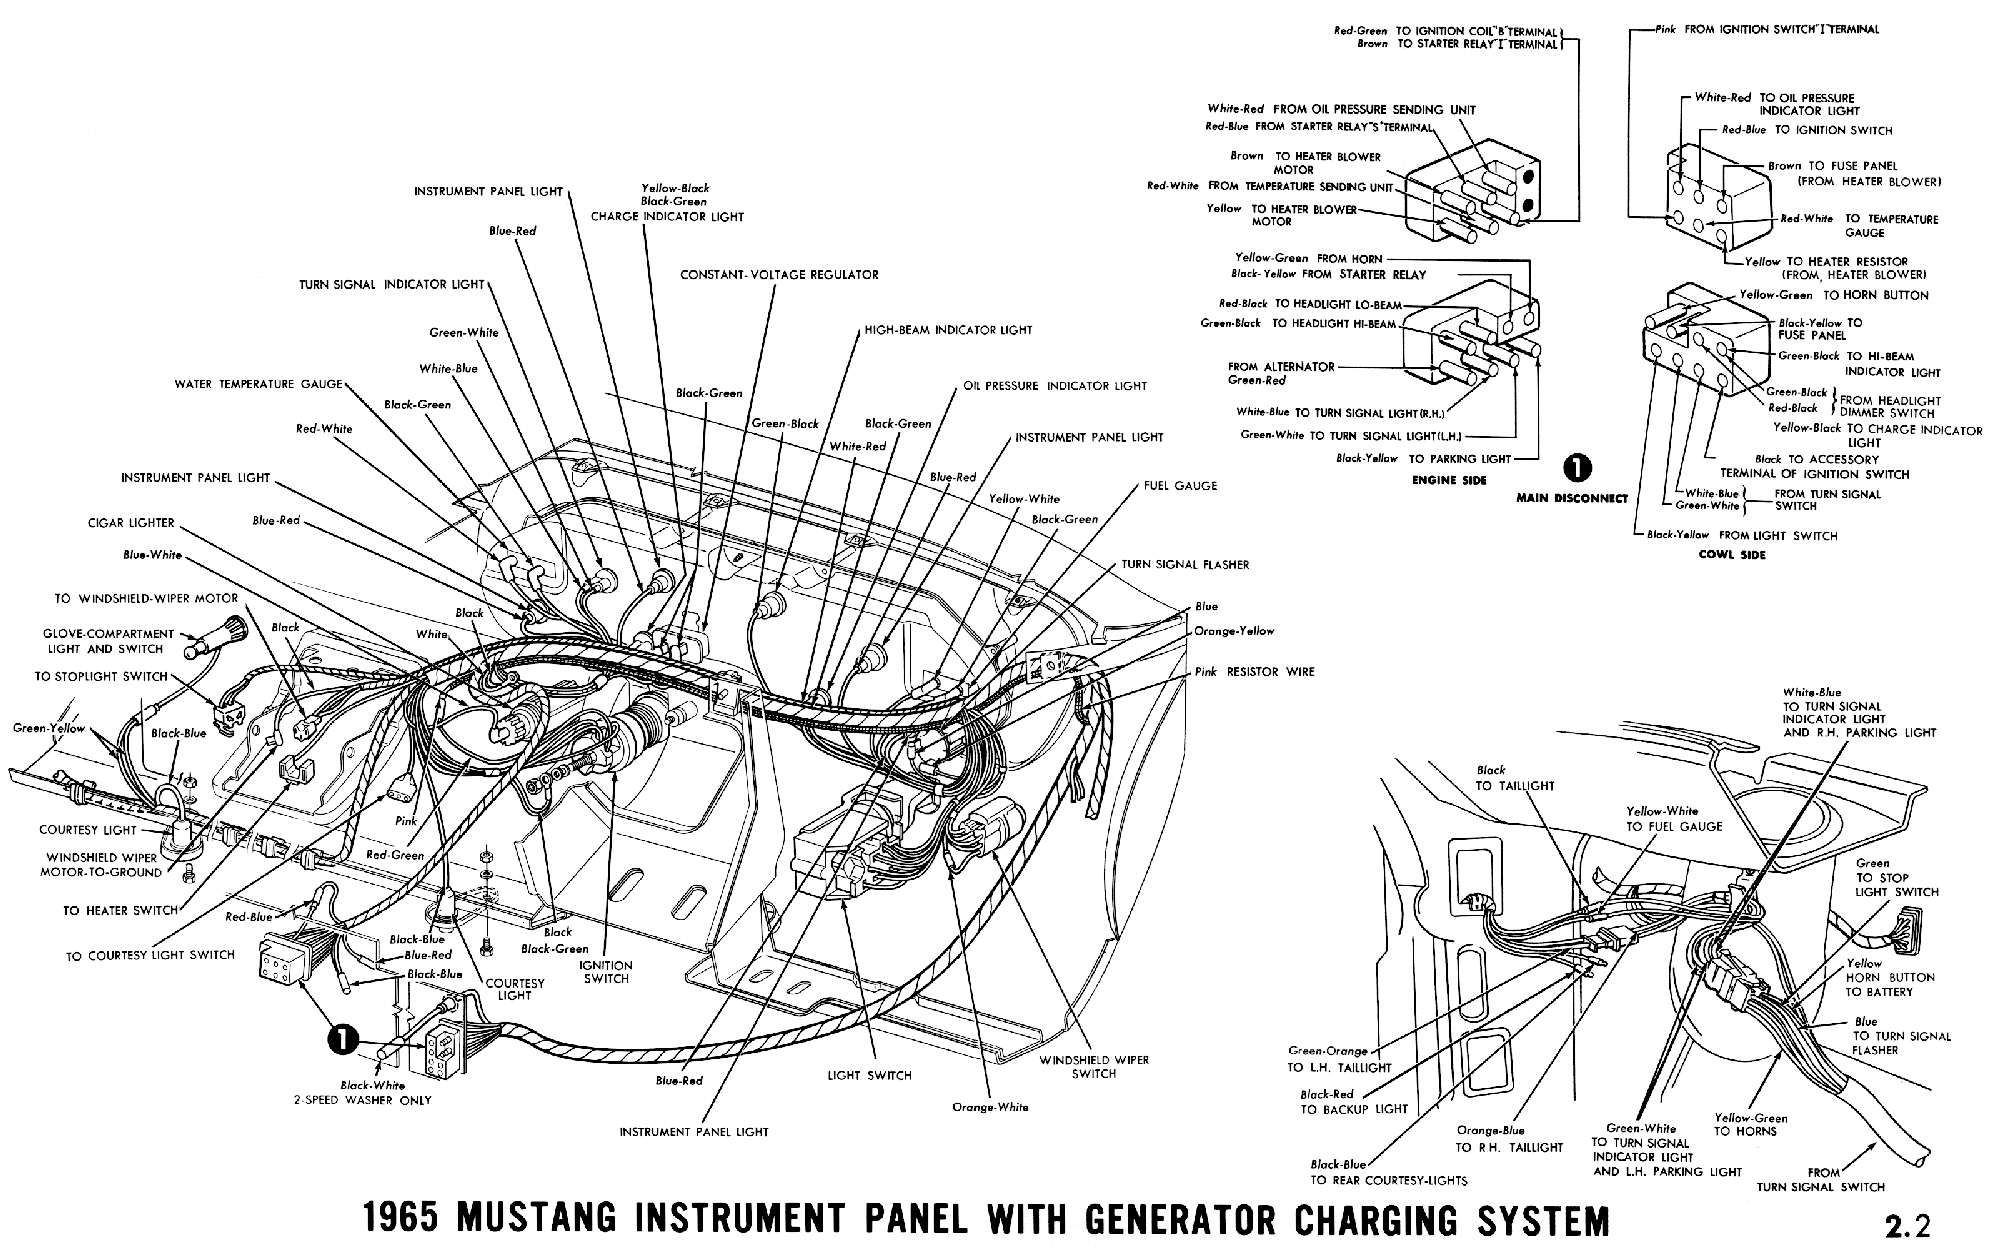 small resolution of 1965 mustang instrument panel with alternator charging system pictorial instrument cluster connections wiper switch headlamp switch ignition switch and